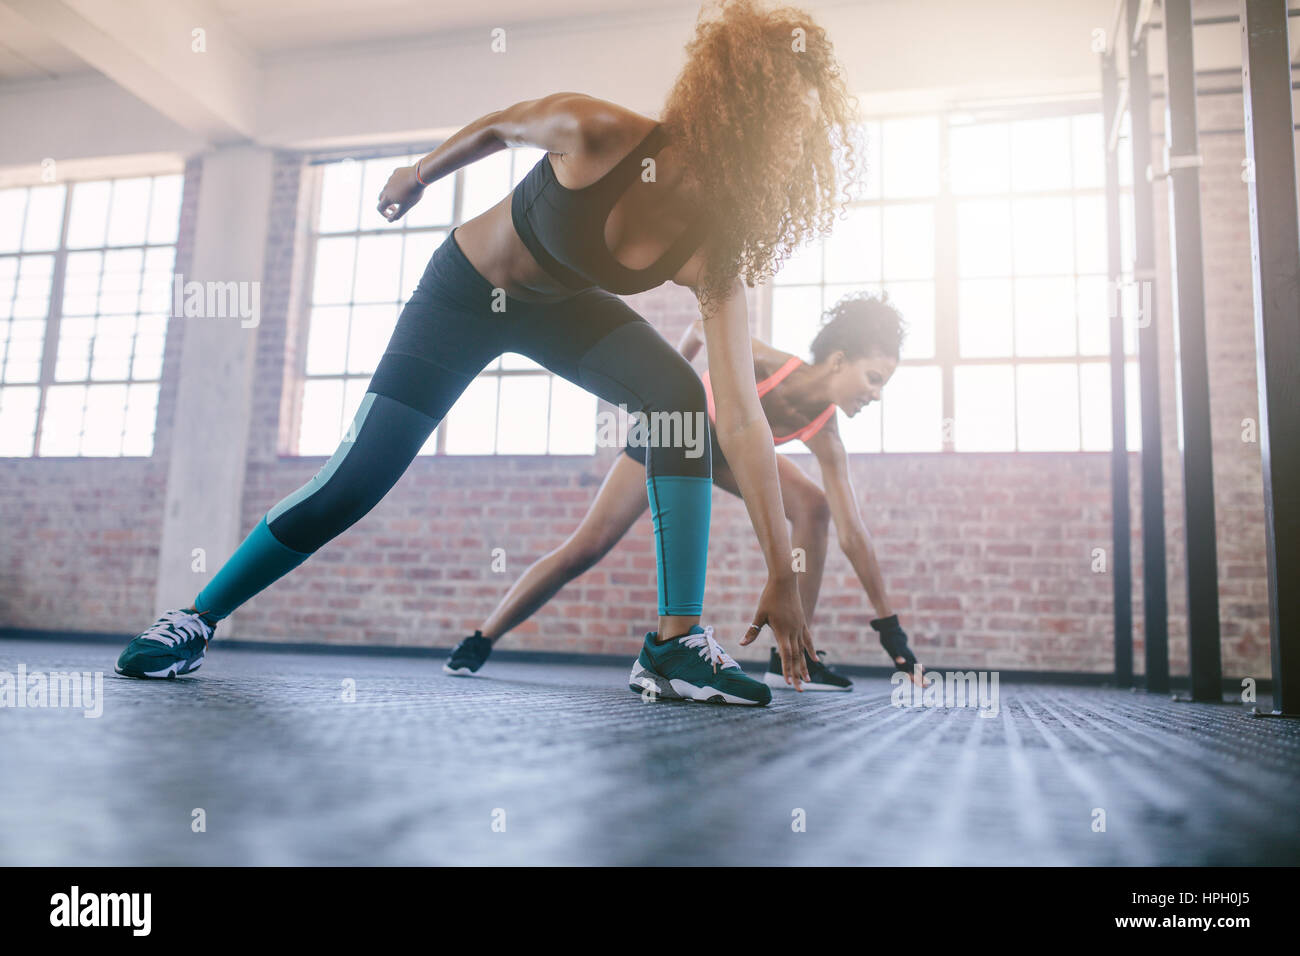 Shot of young females running in the gym. Women doing fitness workout in healthclub. - Stock Image